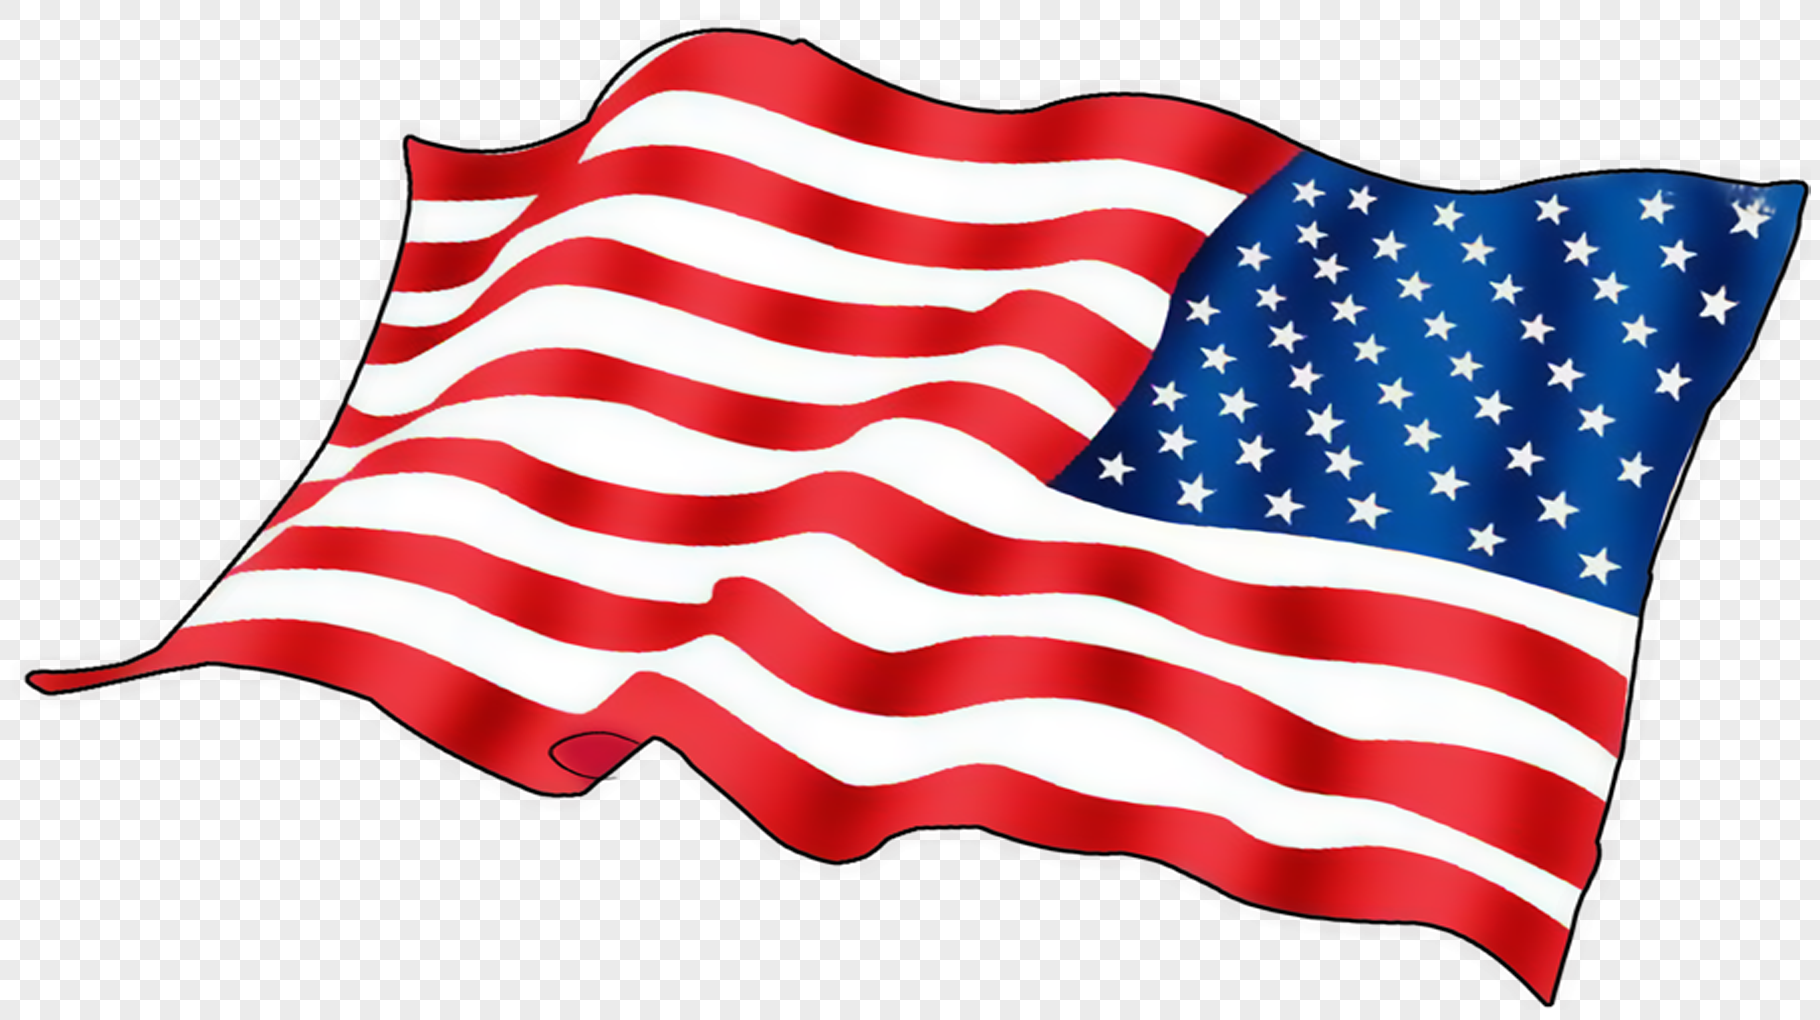 hand painted american flag png image picture free download